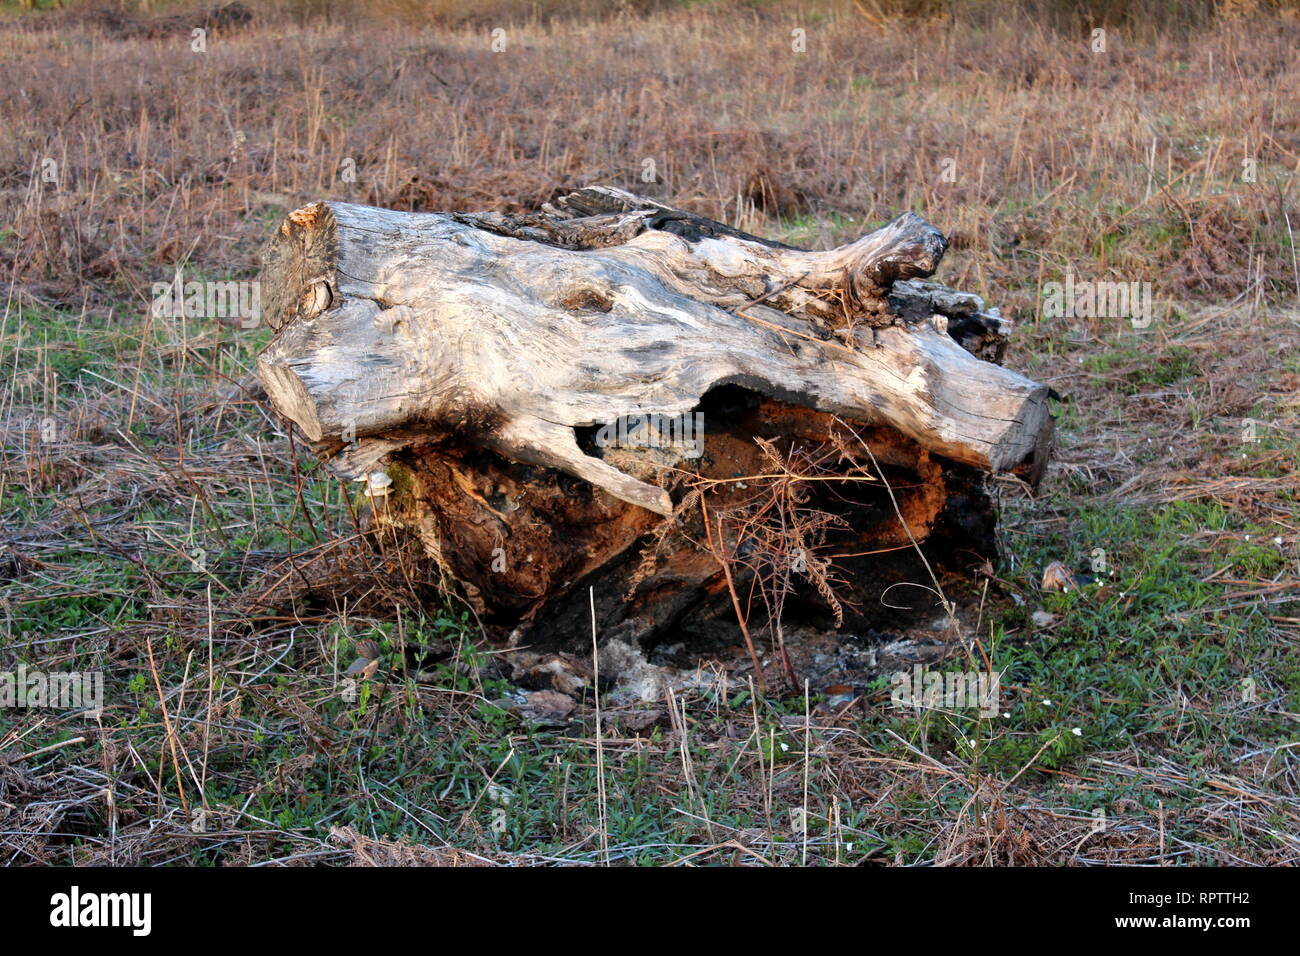 Large cut down and digged out tree stump left in middle of field surrounded with grass and other dried plants on warm sunny day at sunset - Stock Image